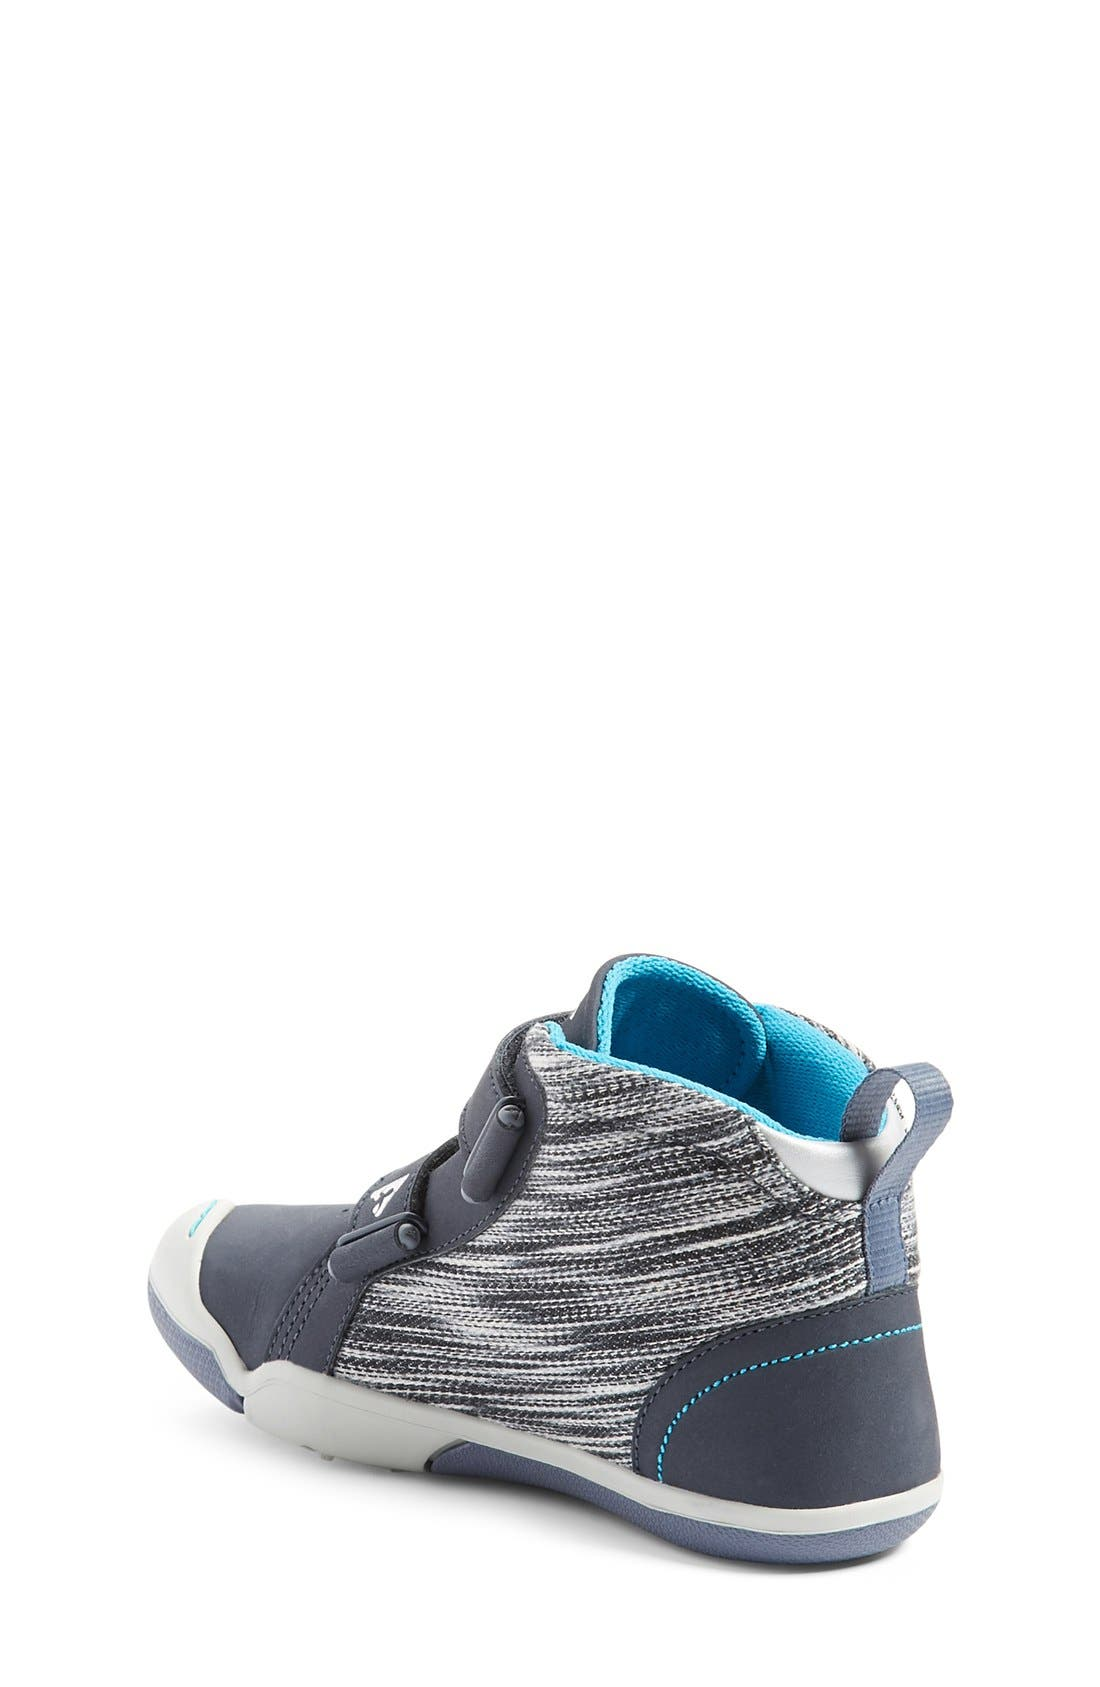 Max Customizable High Top Sneaker,                             Alternate thumbnail 6, color,                             LEATHER WIND